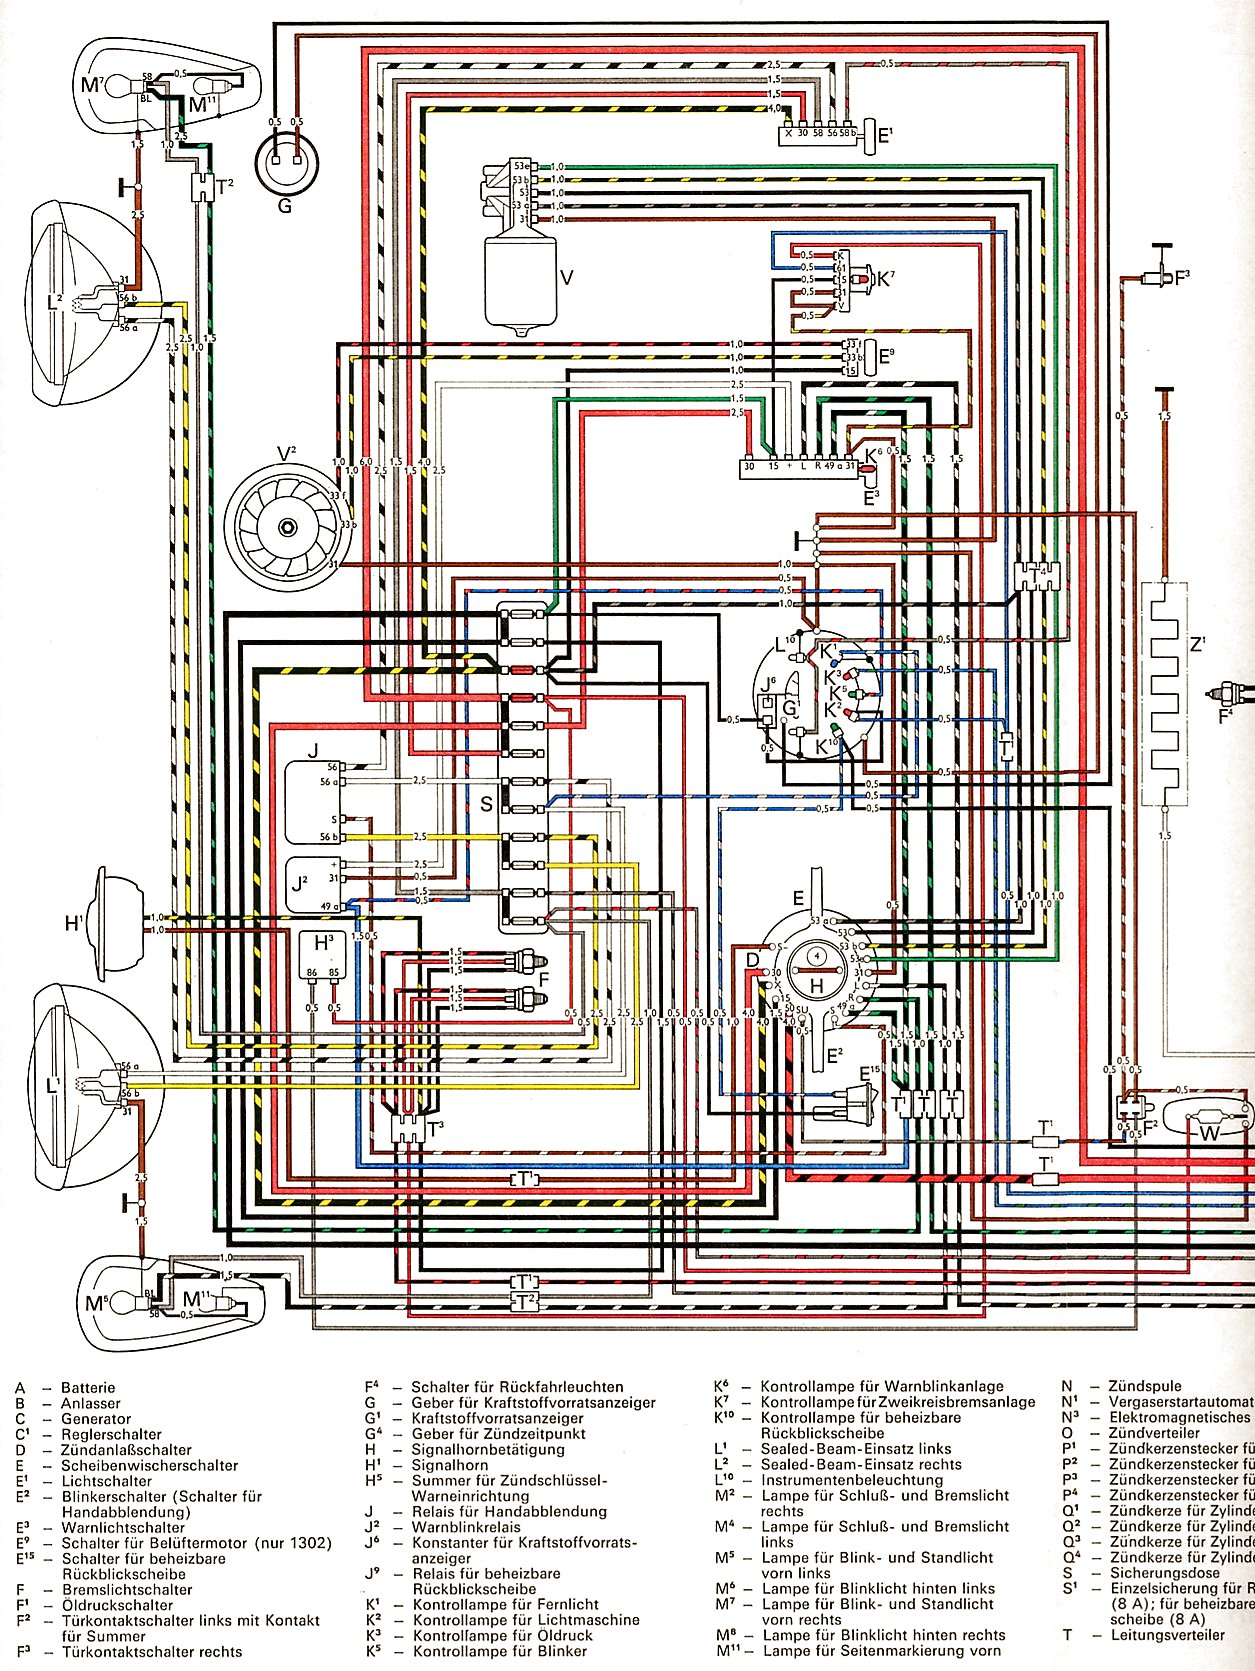 1300_and_1302_USA_from_August_1971 1 wiring diagram shoptalkforums com 1971 vw super beetle wiring diagram at bayanpartner.co